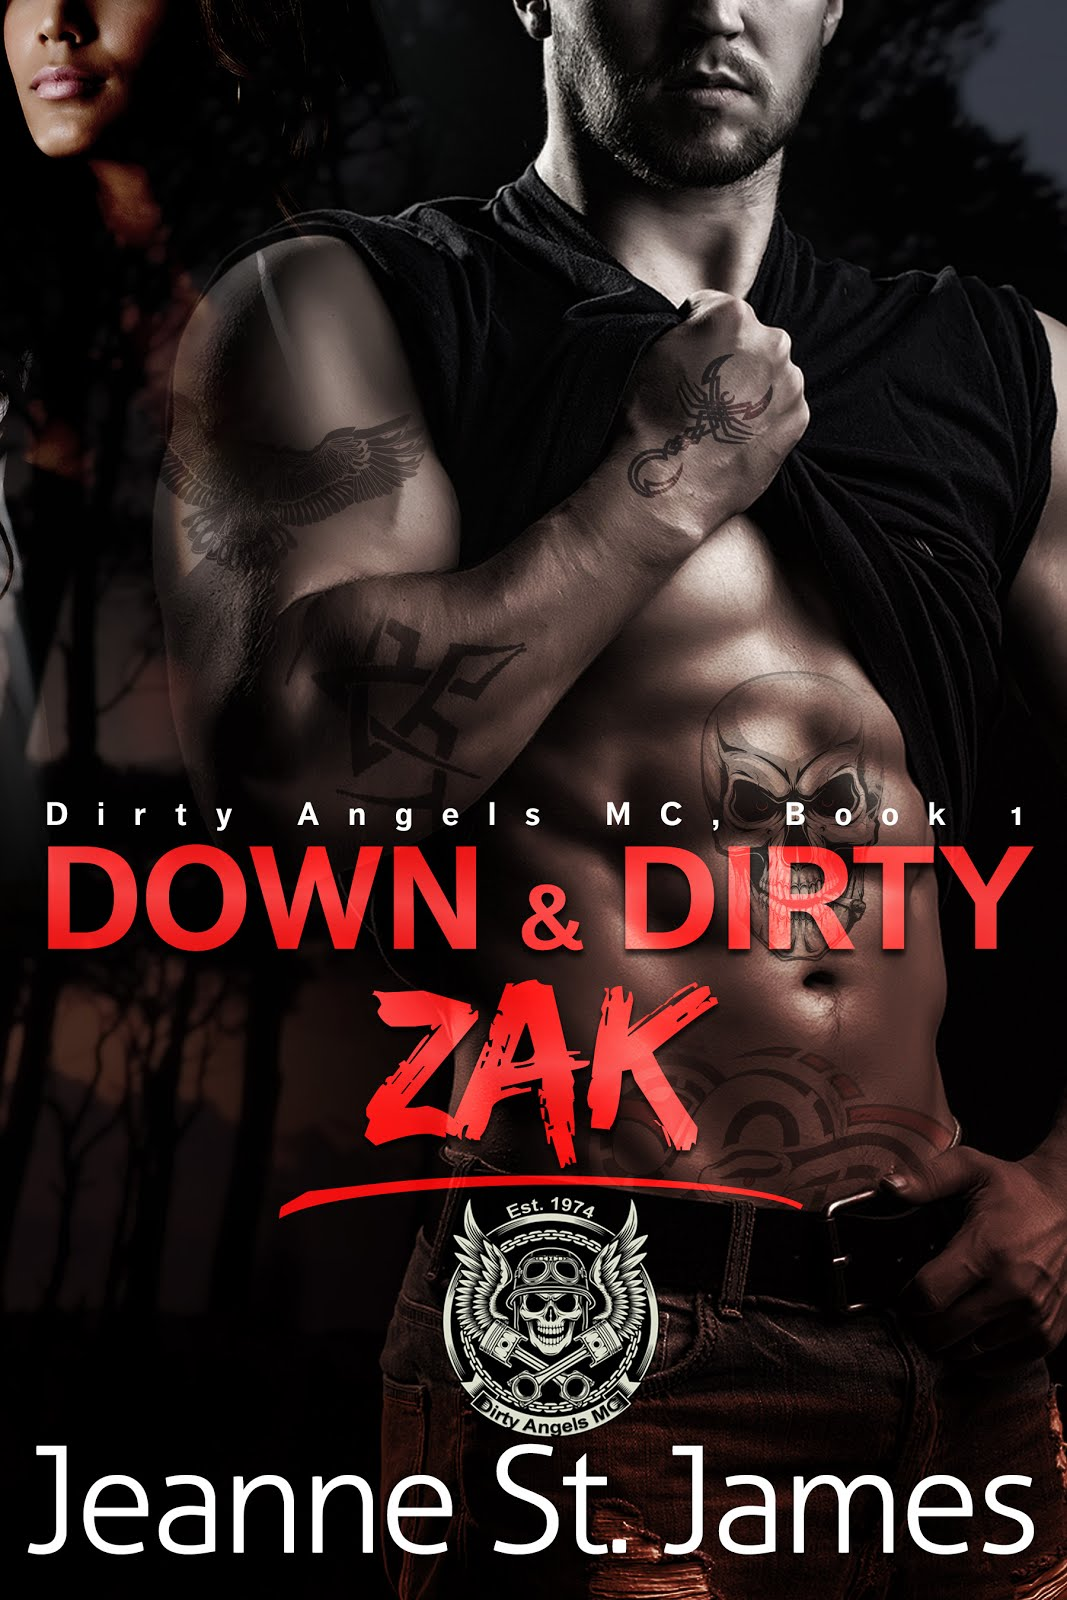 Down & Dirty: Zak (Dirty Angels MC)